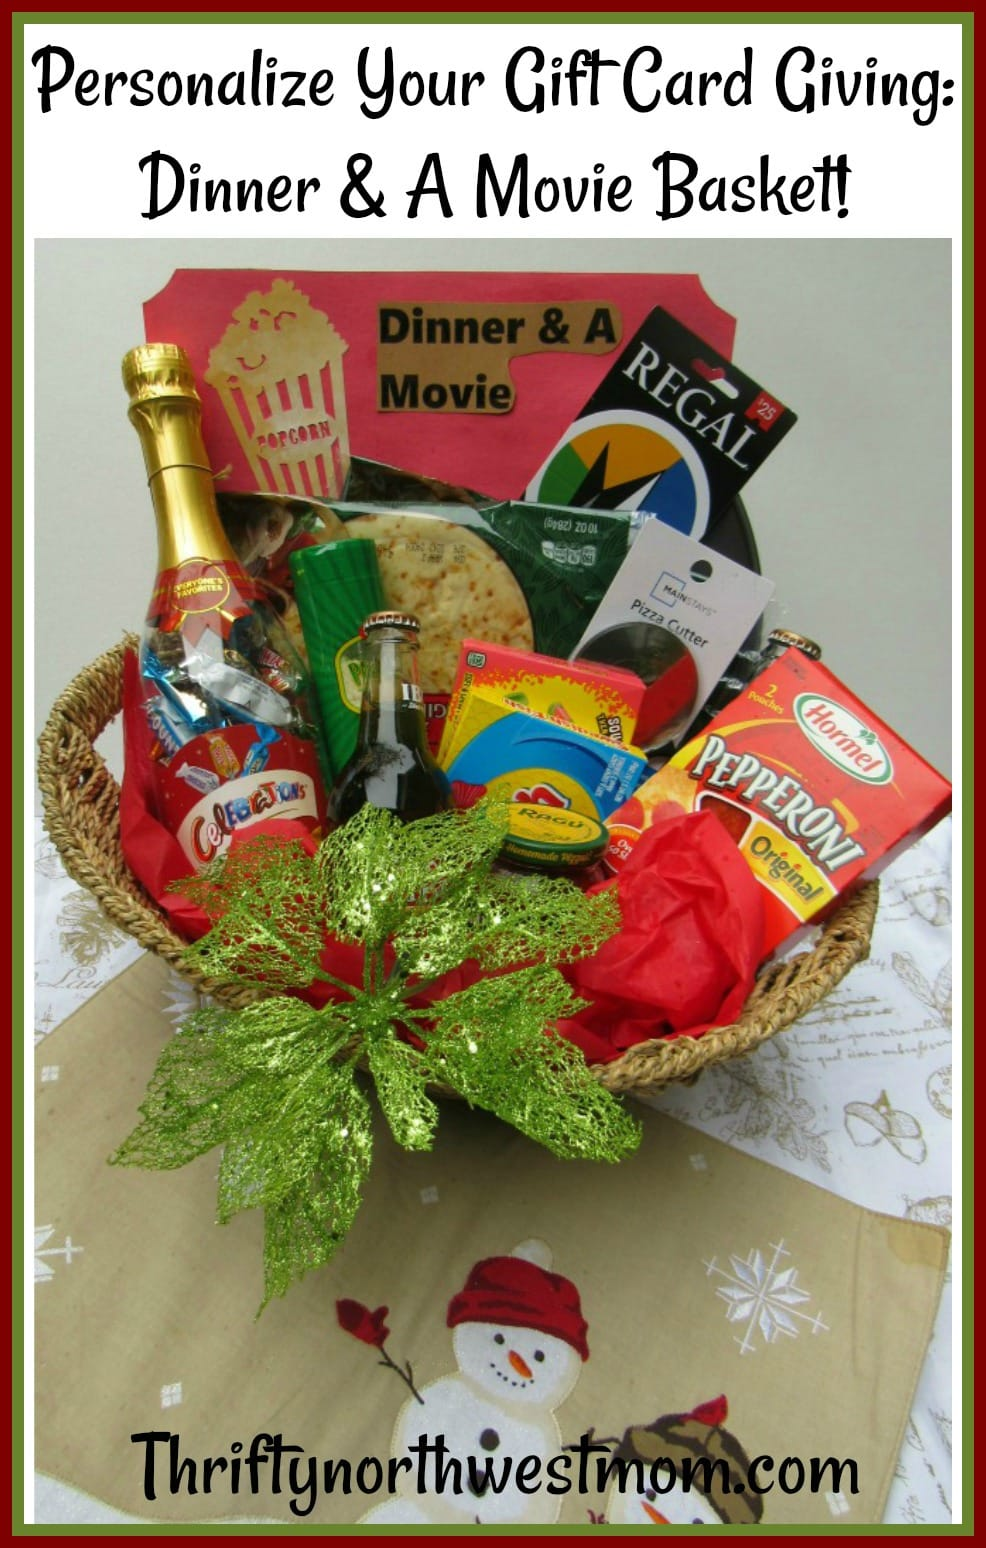 Personalize your Gift Card Giving with this creative dinner & a movie basket for a Christmas gift for a family, couple, teacher, teens and more.